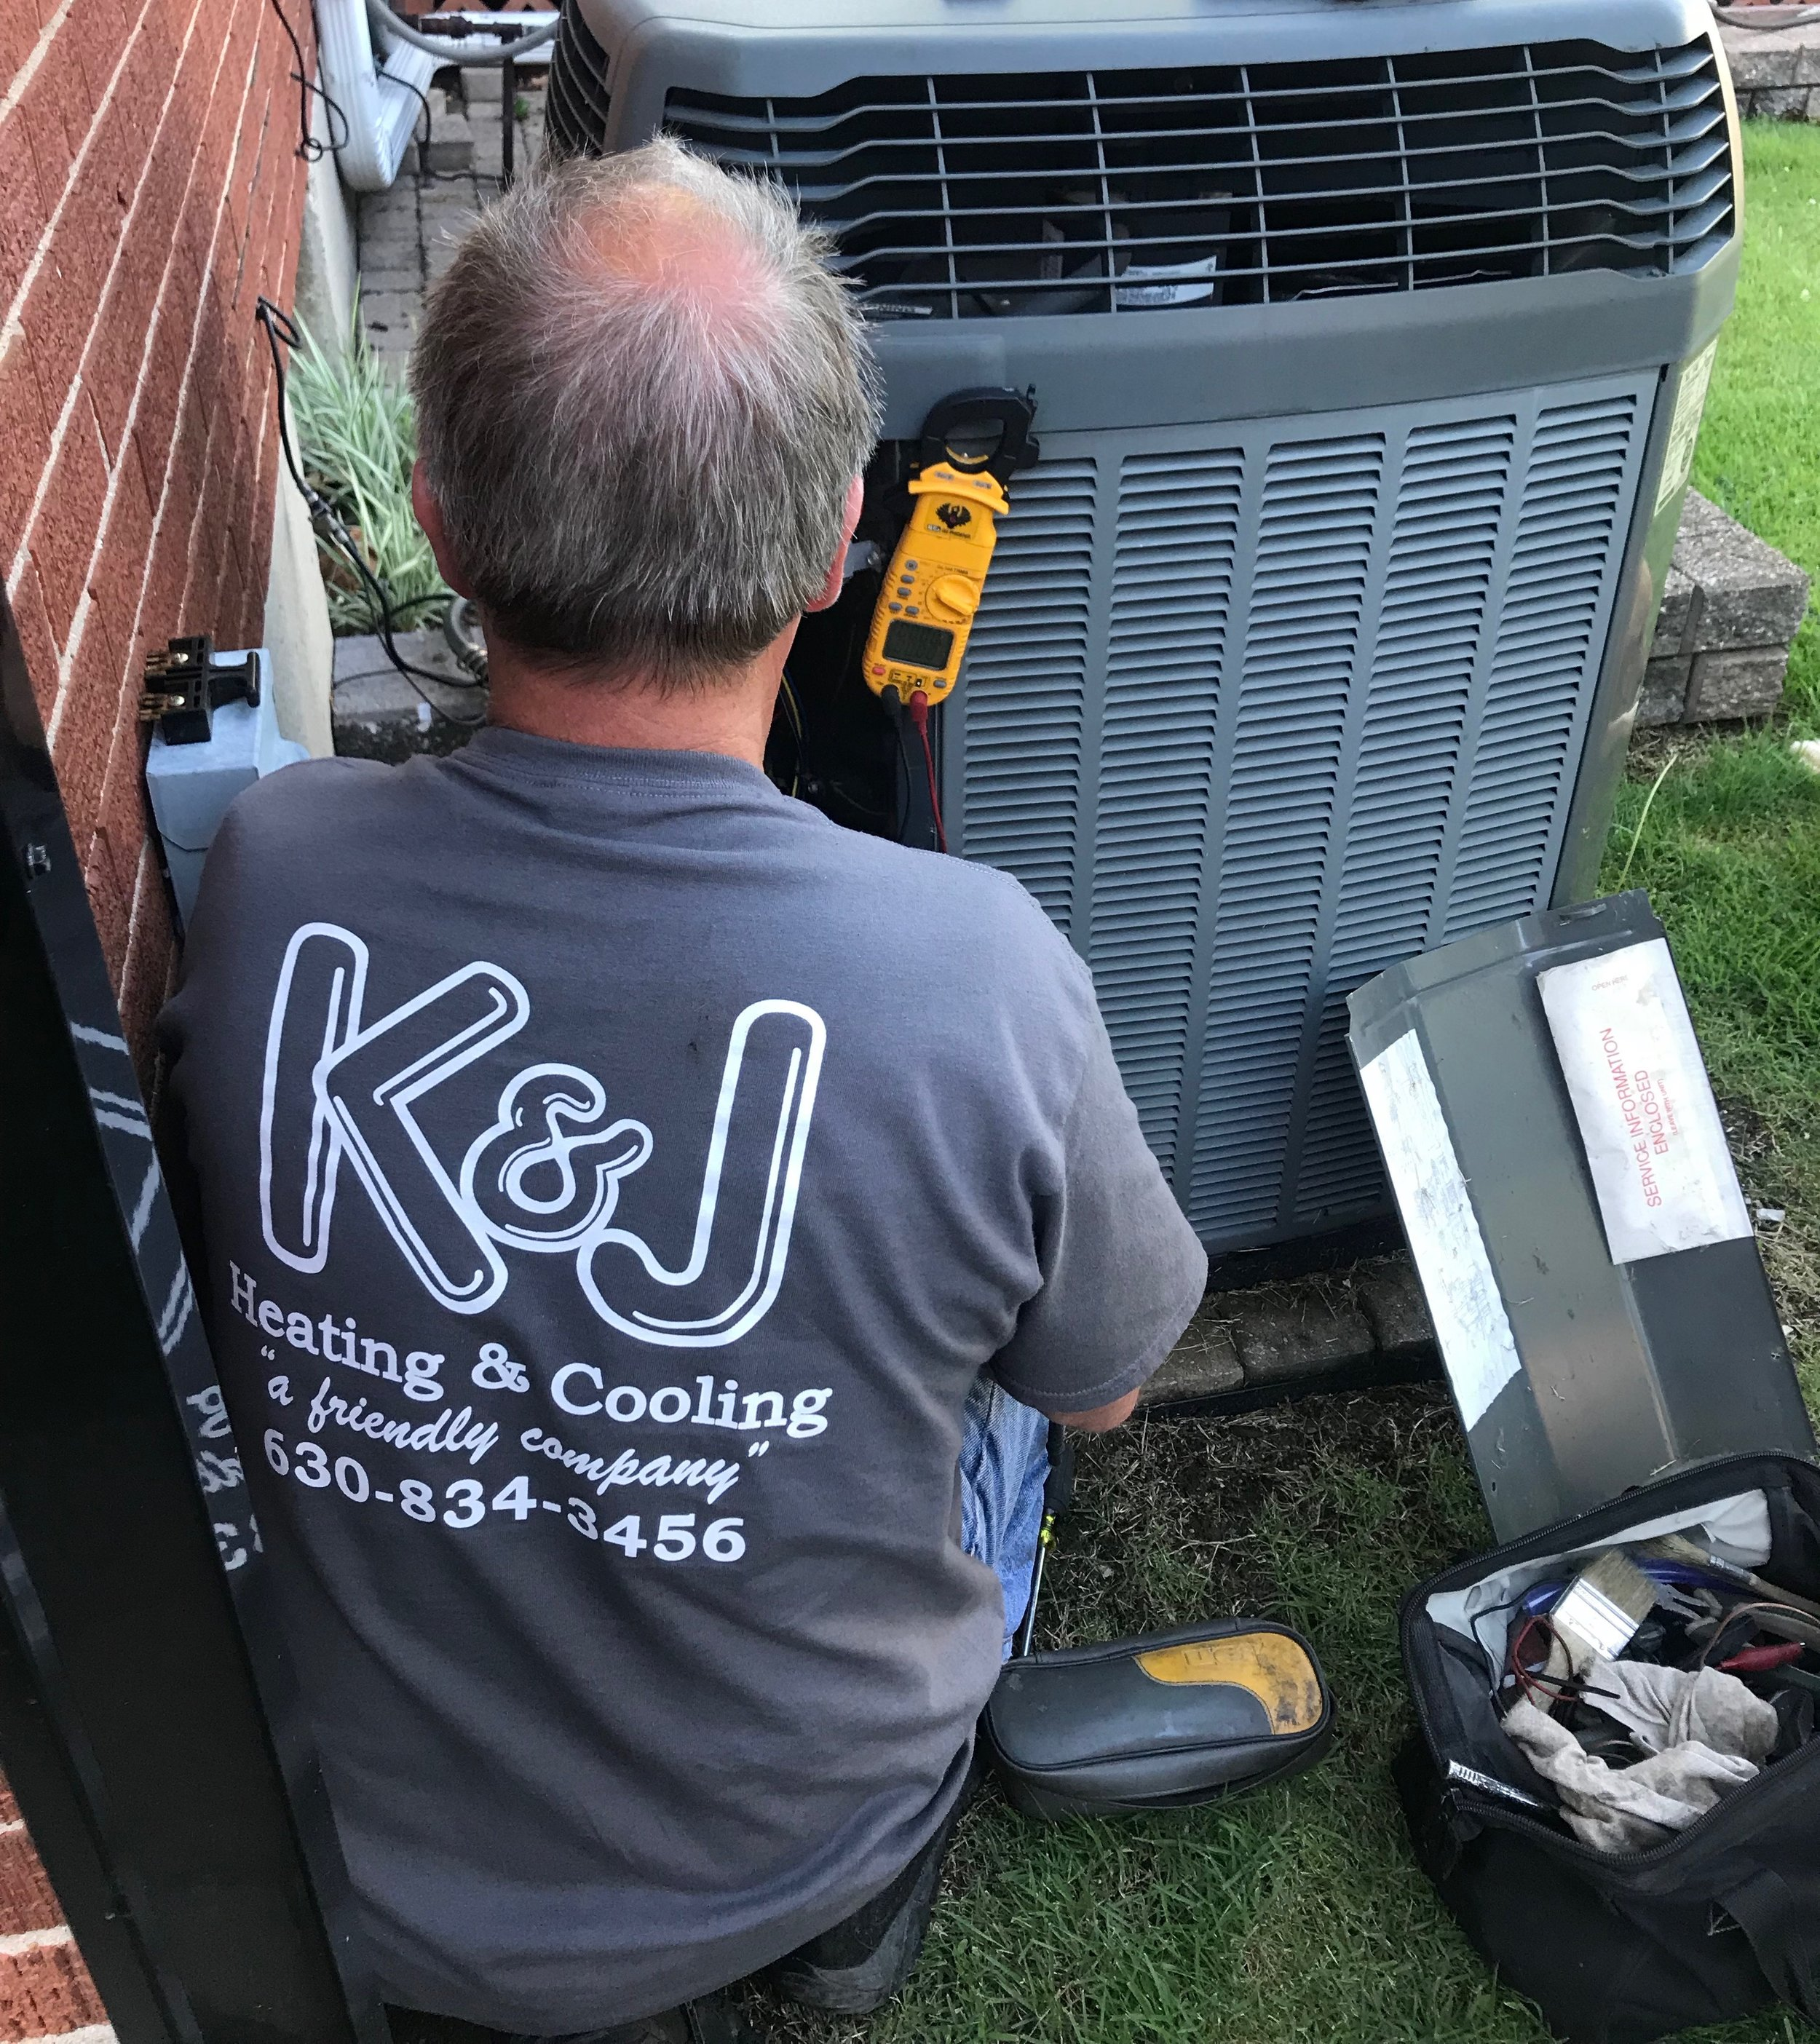 Trusted K & J Heating and Cooling, Inc. HVAC Service Technician Repairing a Customers Air Conditioner.